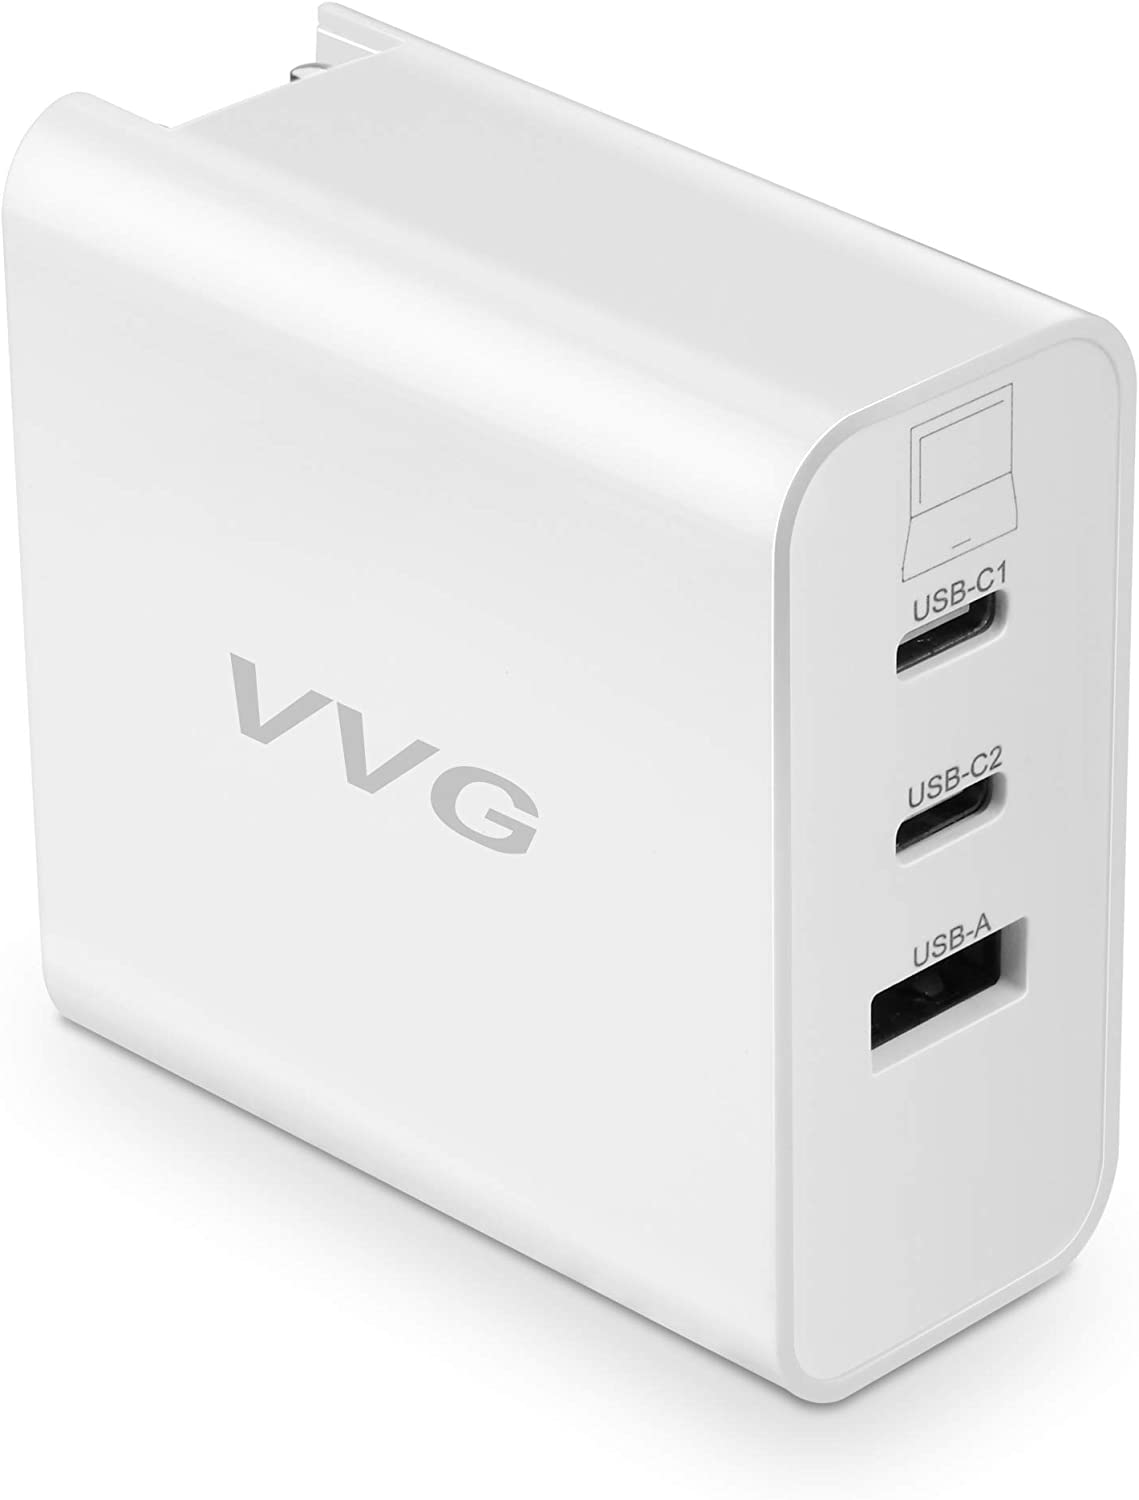 USB Type-C Wall Fast Charger,65W PD Charger,USB C Power Adapter,Foldable Plug,3-Port USB C Quick Charger Compatible with Phone SE,Laptops,Galaxy via USB-C(White)